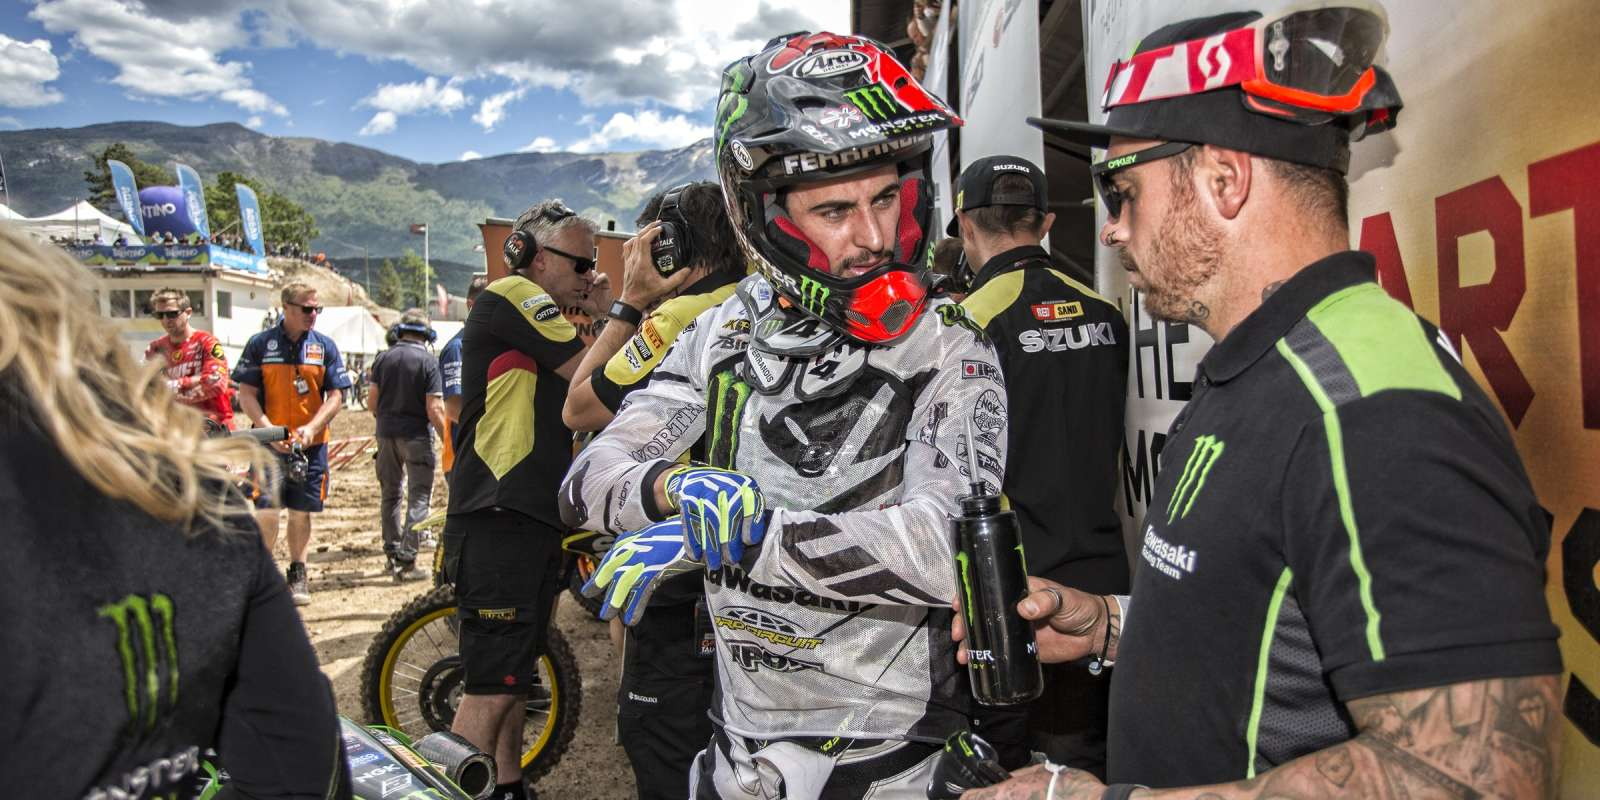 Dylan Ferrandis at the 2016 MXGP of Trentino